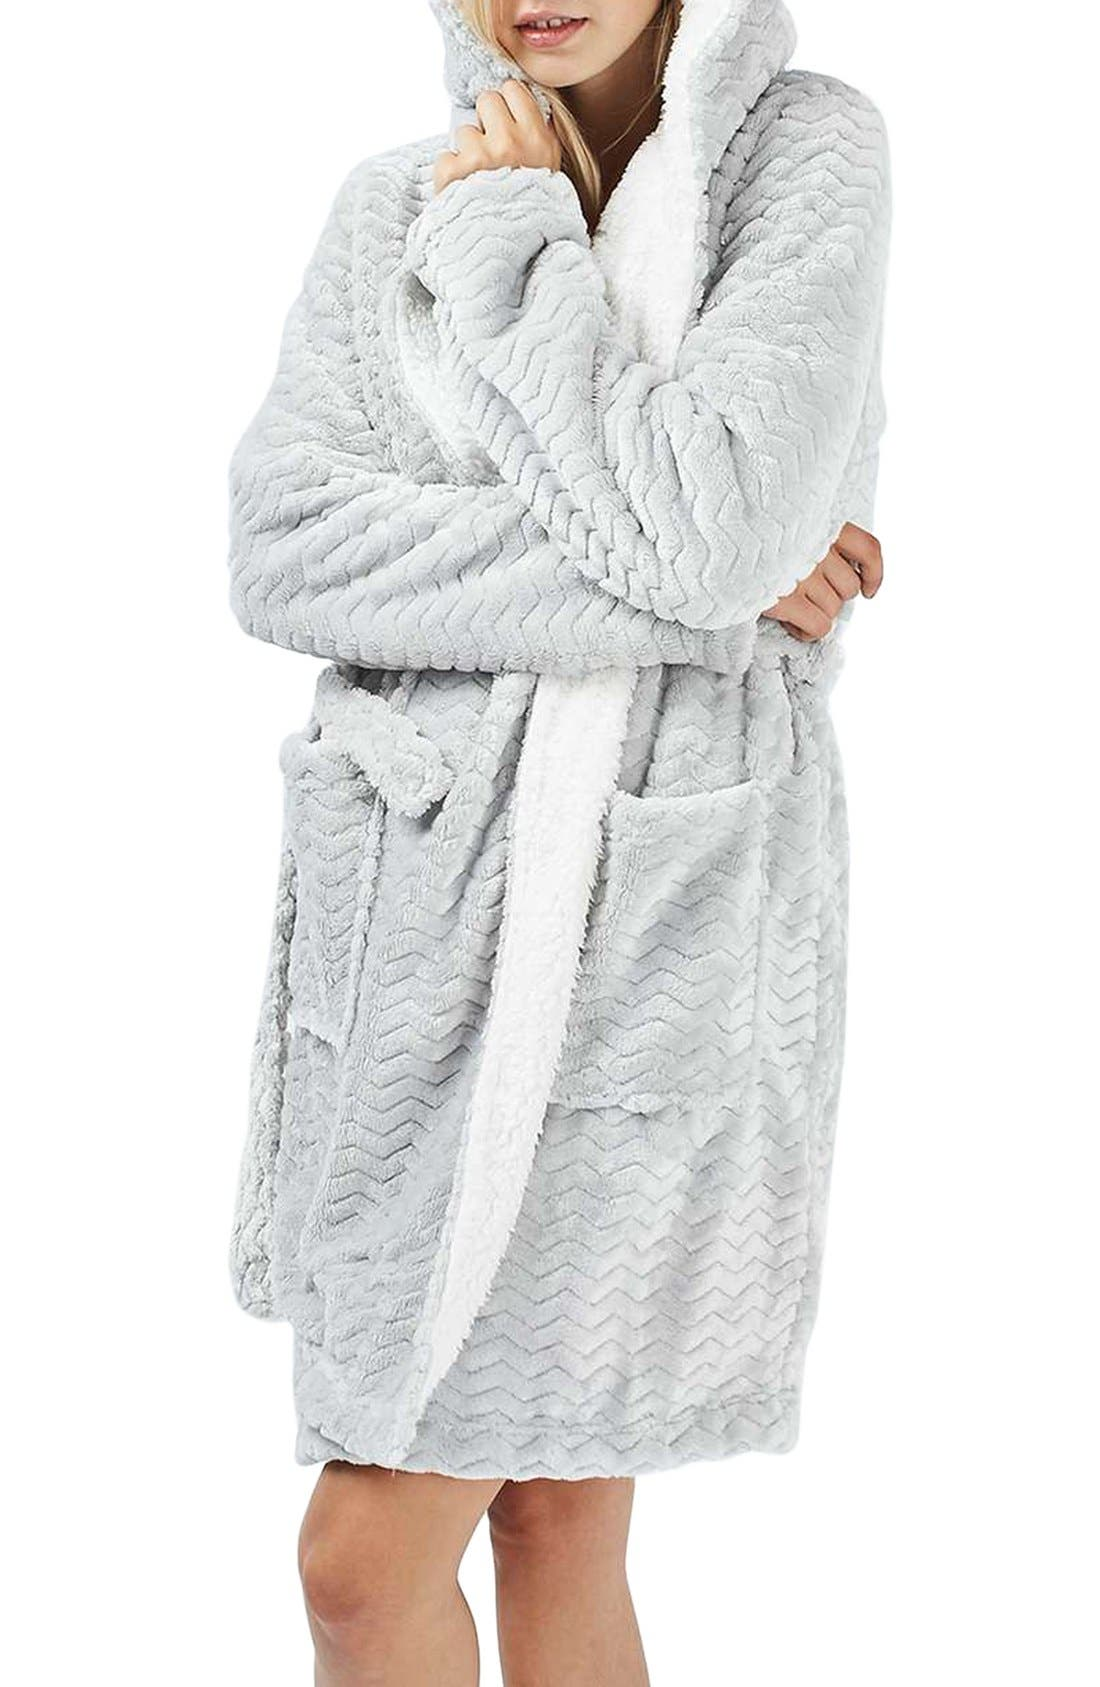 TOPSHOP,                             Teddy Hooded Chevron Robe,                             Main thumbnail 1, color,                             020